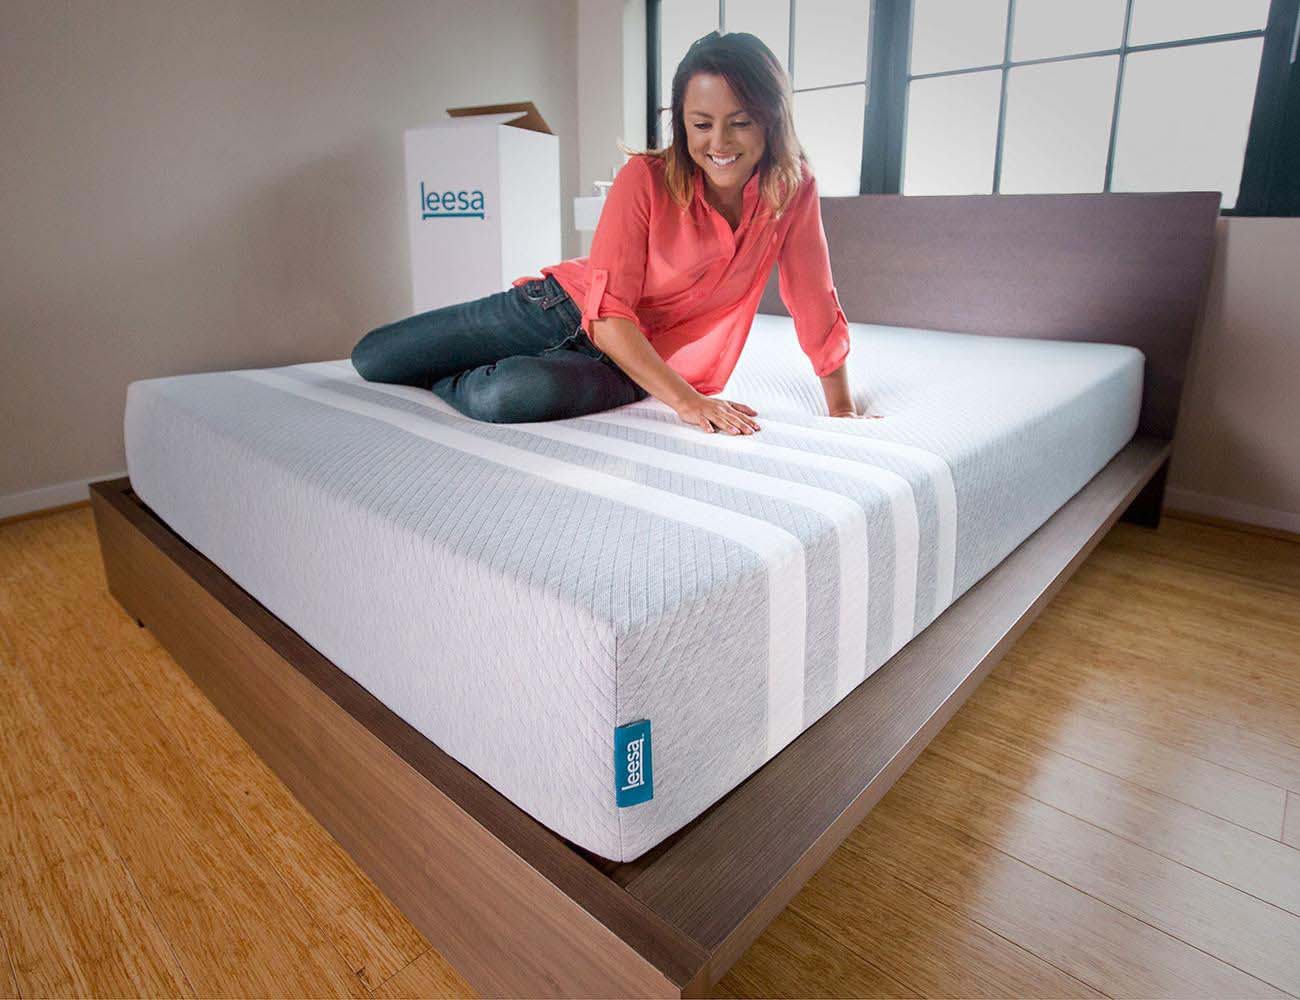 Leesa+%26%238211%3B+A+Mattress+Redesigned